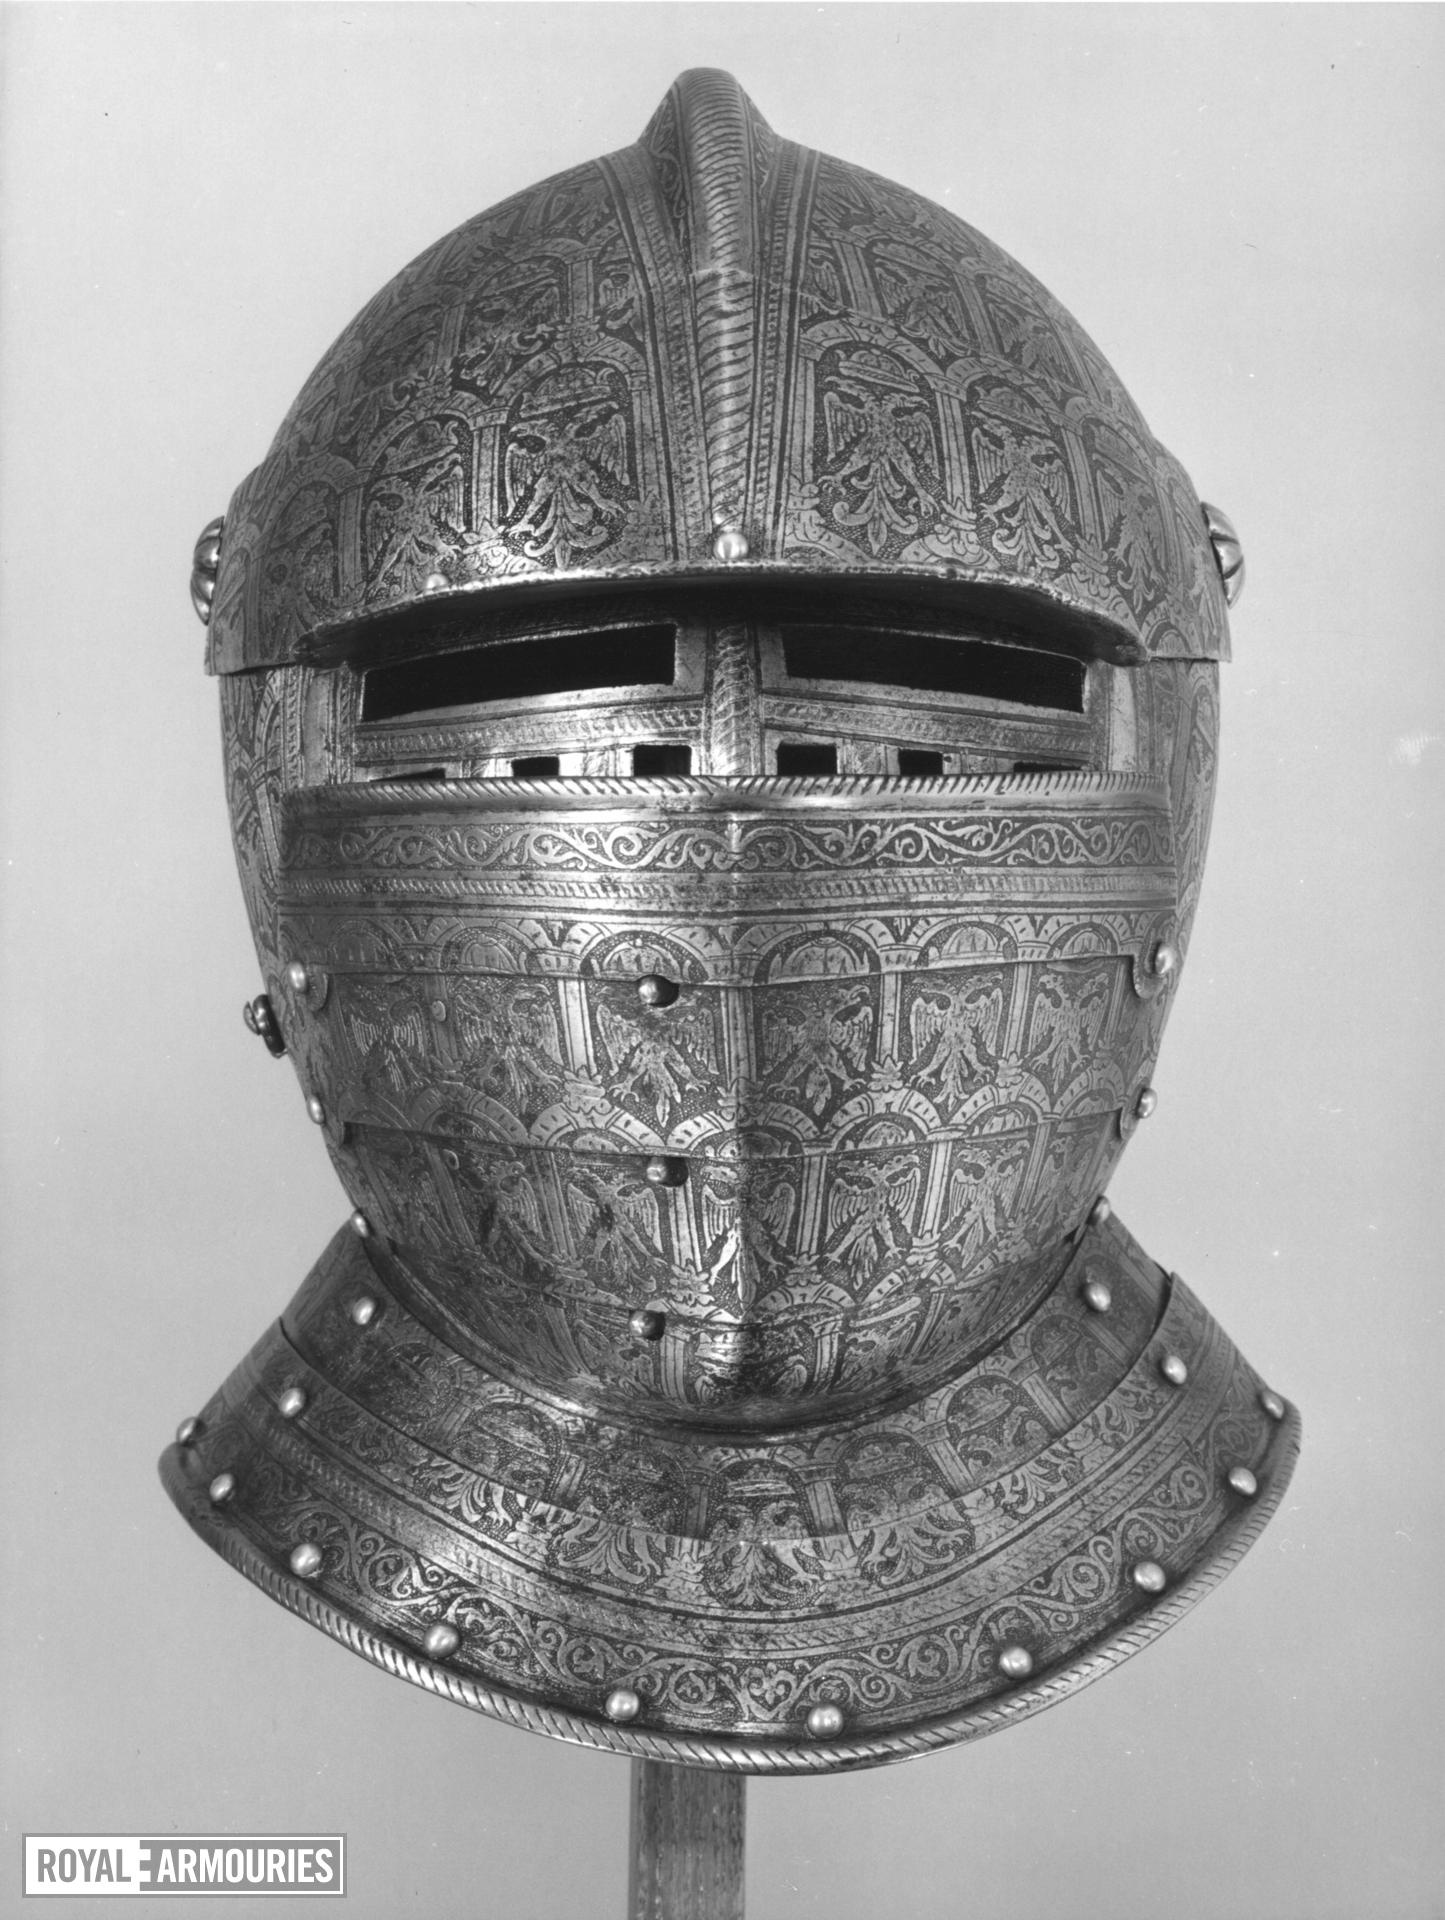 Demilance armour of Count Annibale Capodilista